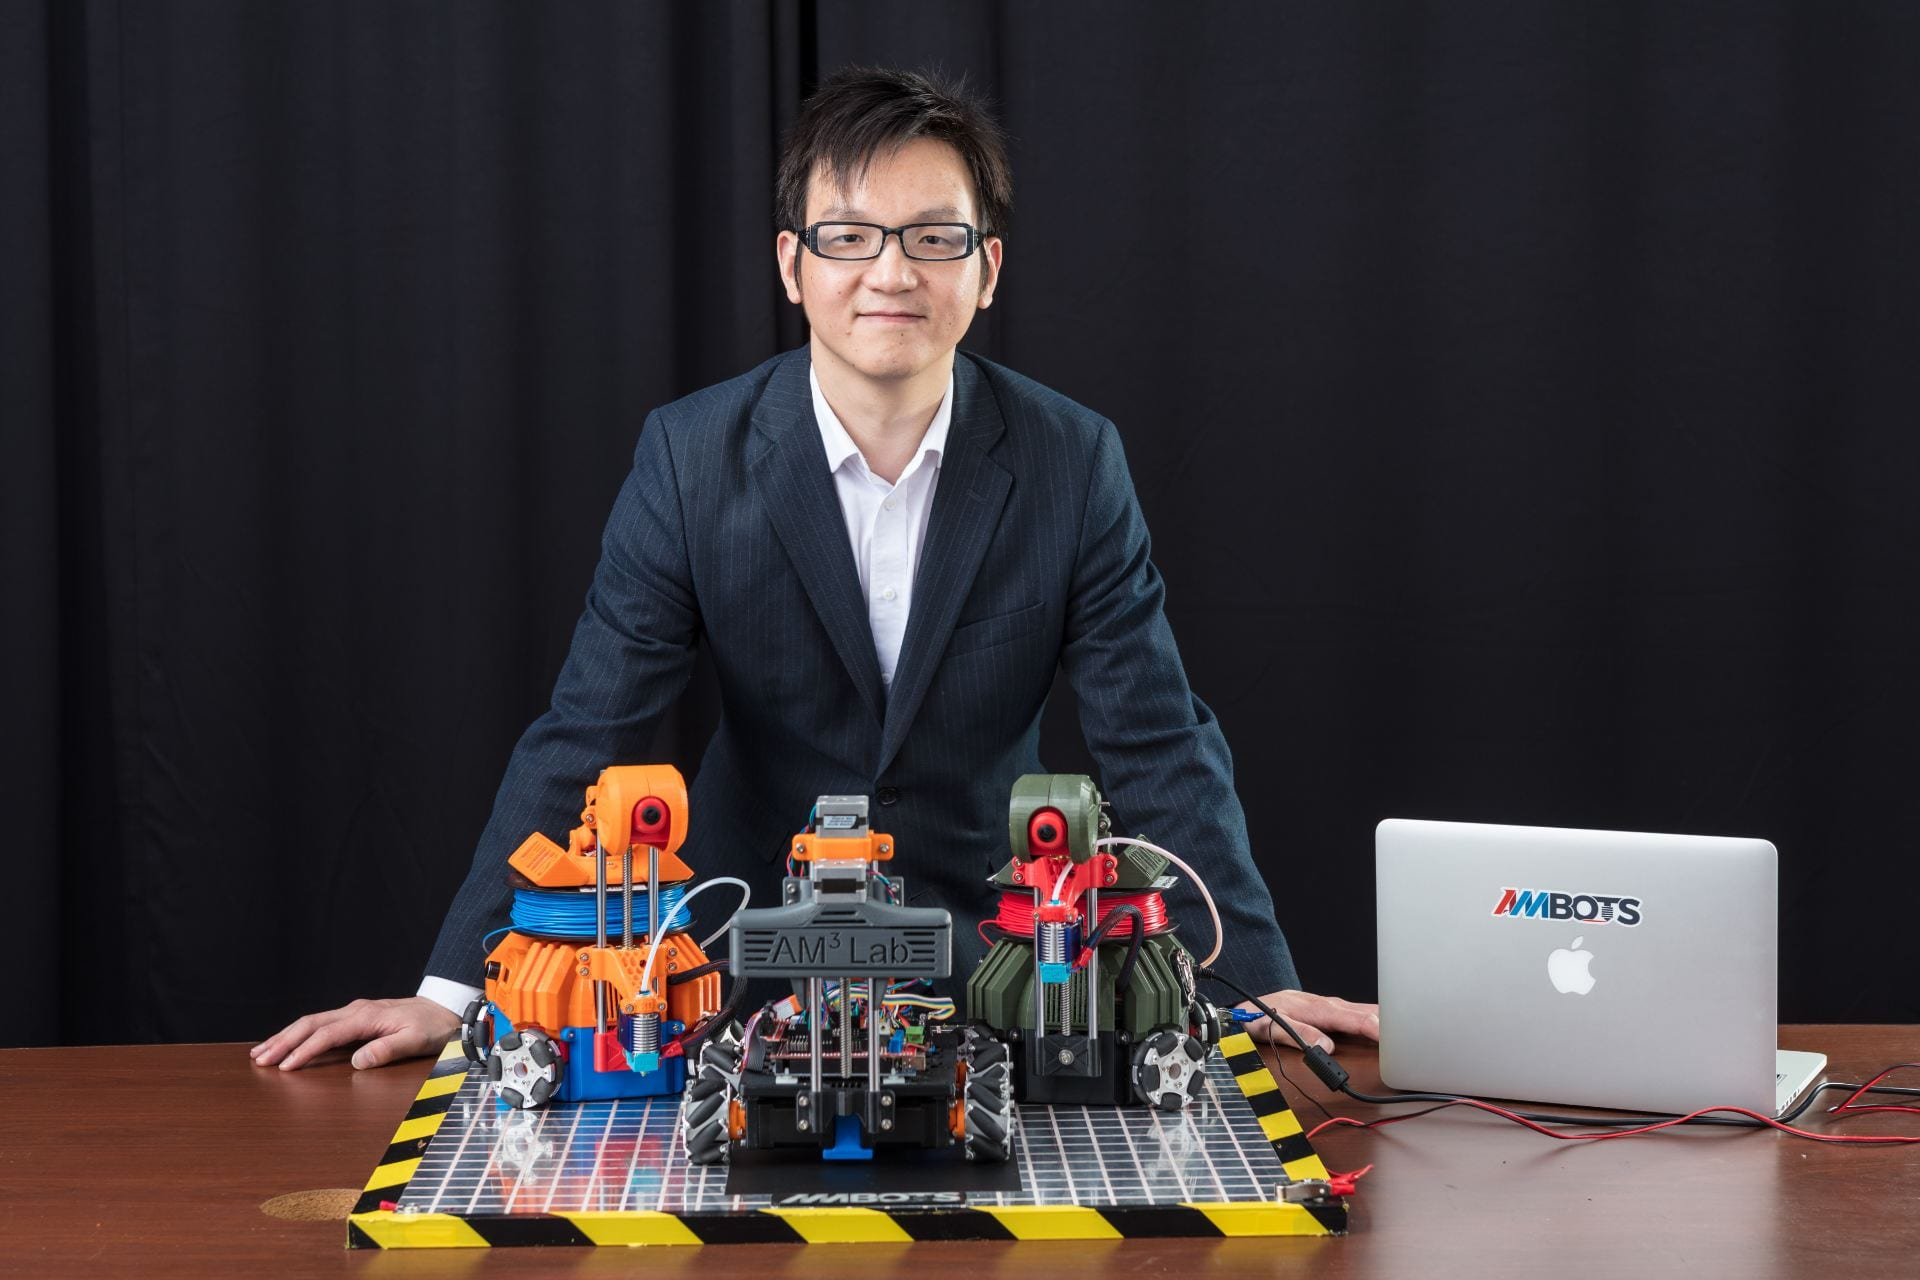 Wenchao Zhou, co-founder of Ambots with mobile 3D printers. Image via Ambots.